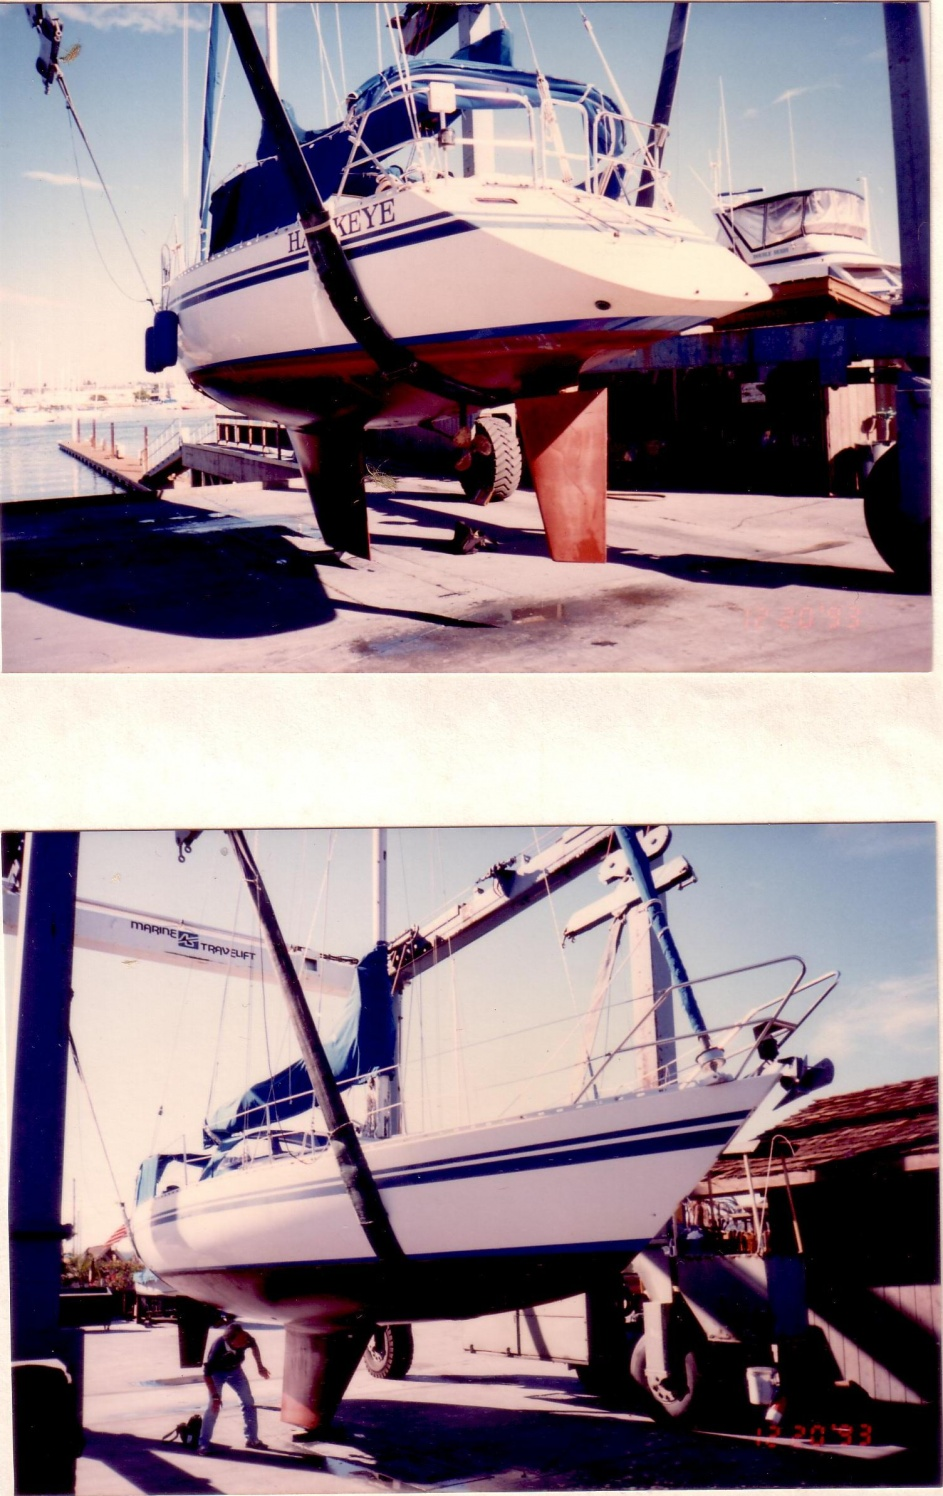 Click image for larger version  Name:Hawkeye - out of water photos 1.jpg Views:218 Size:413.3 KB ID:163588